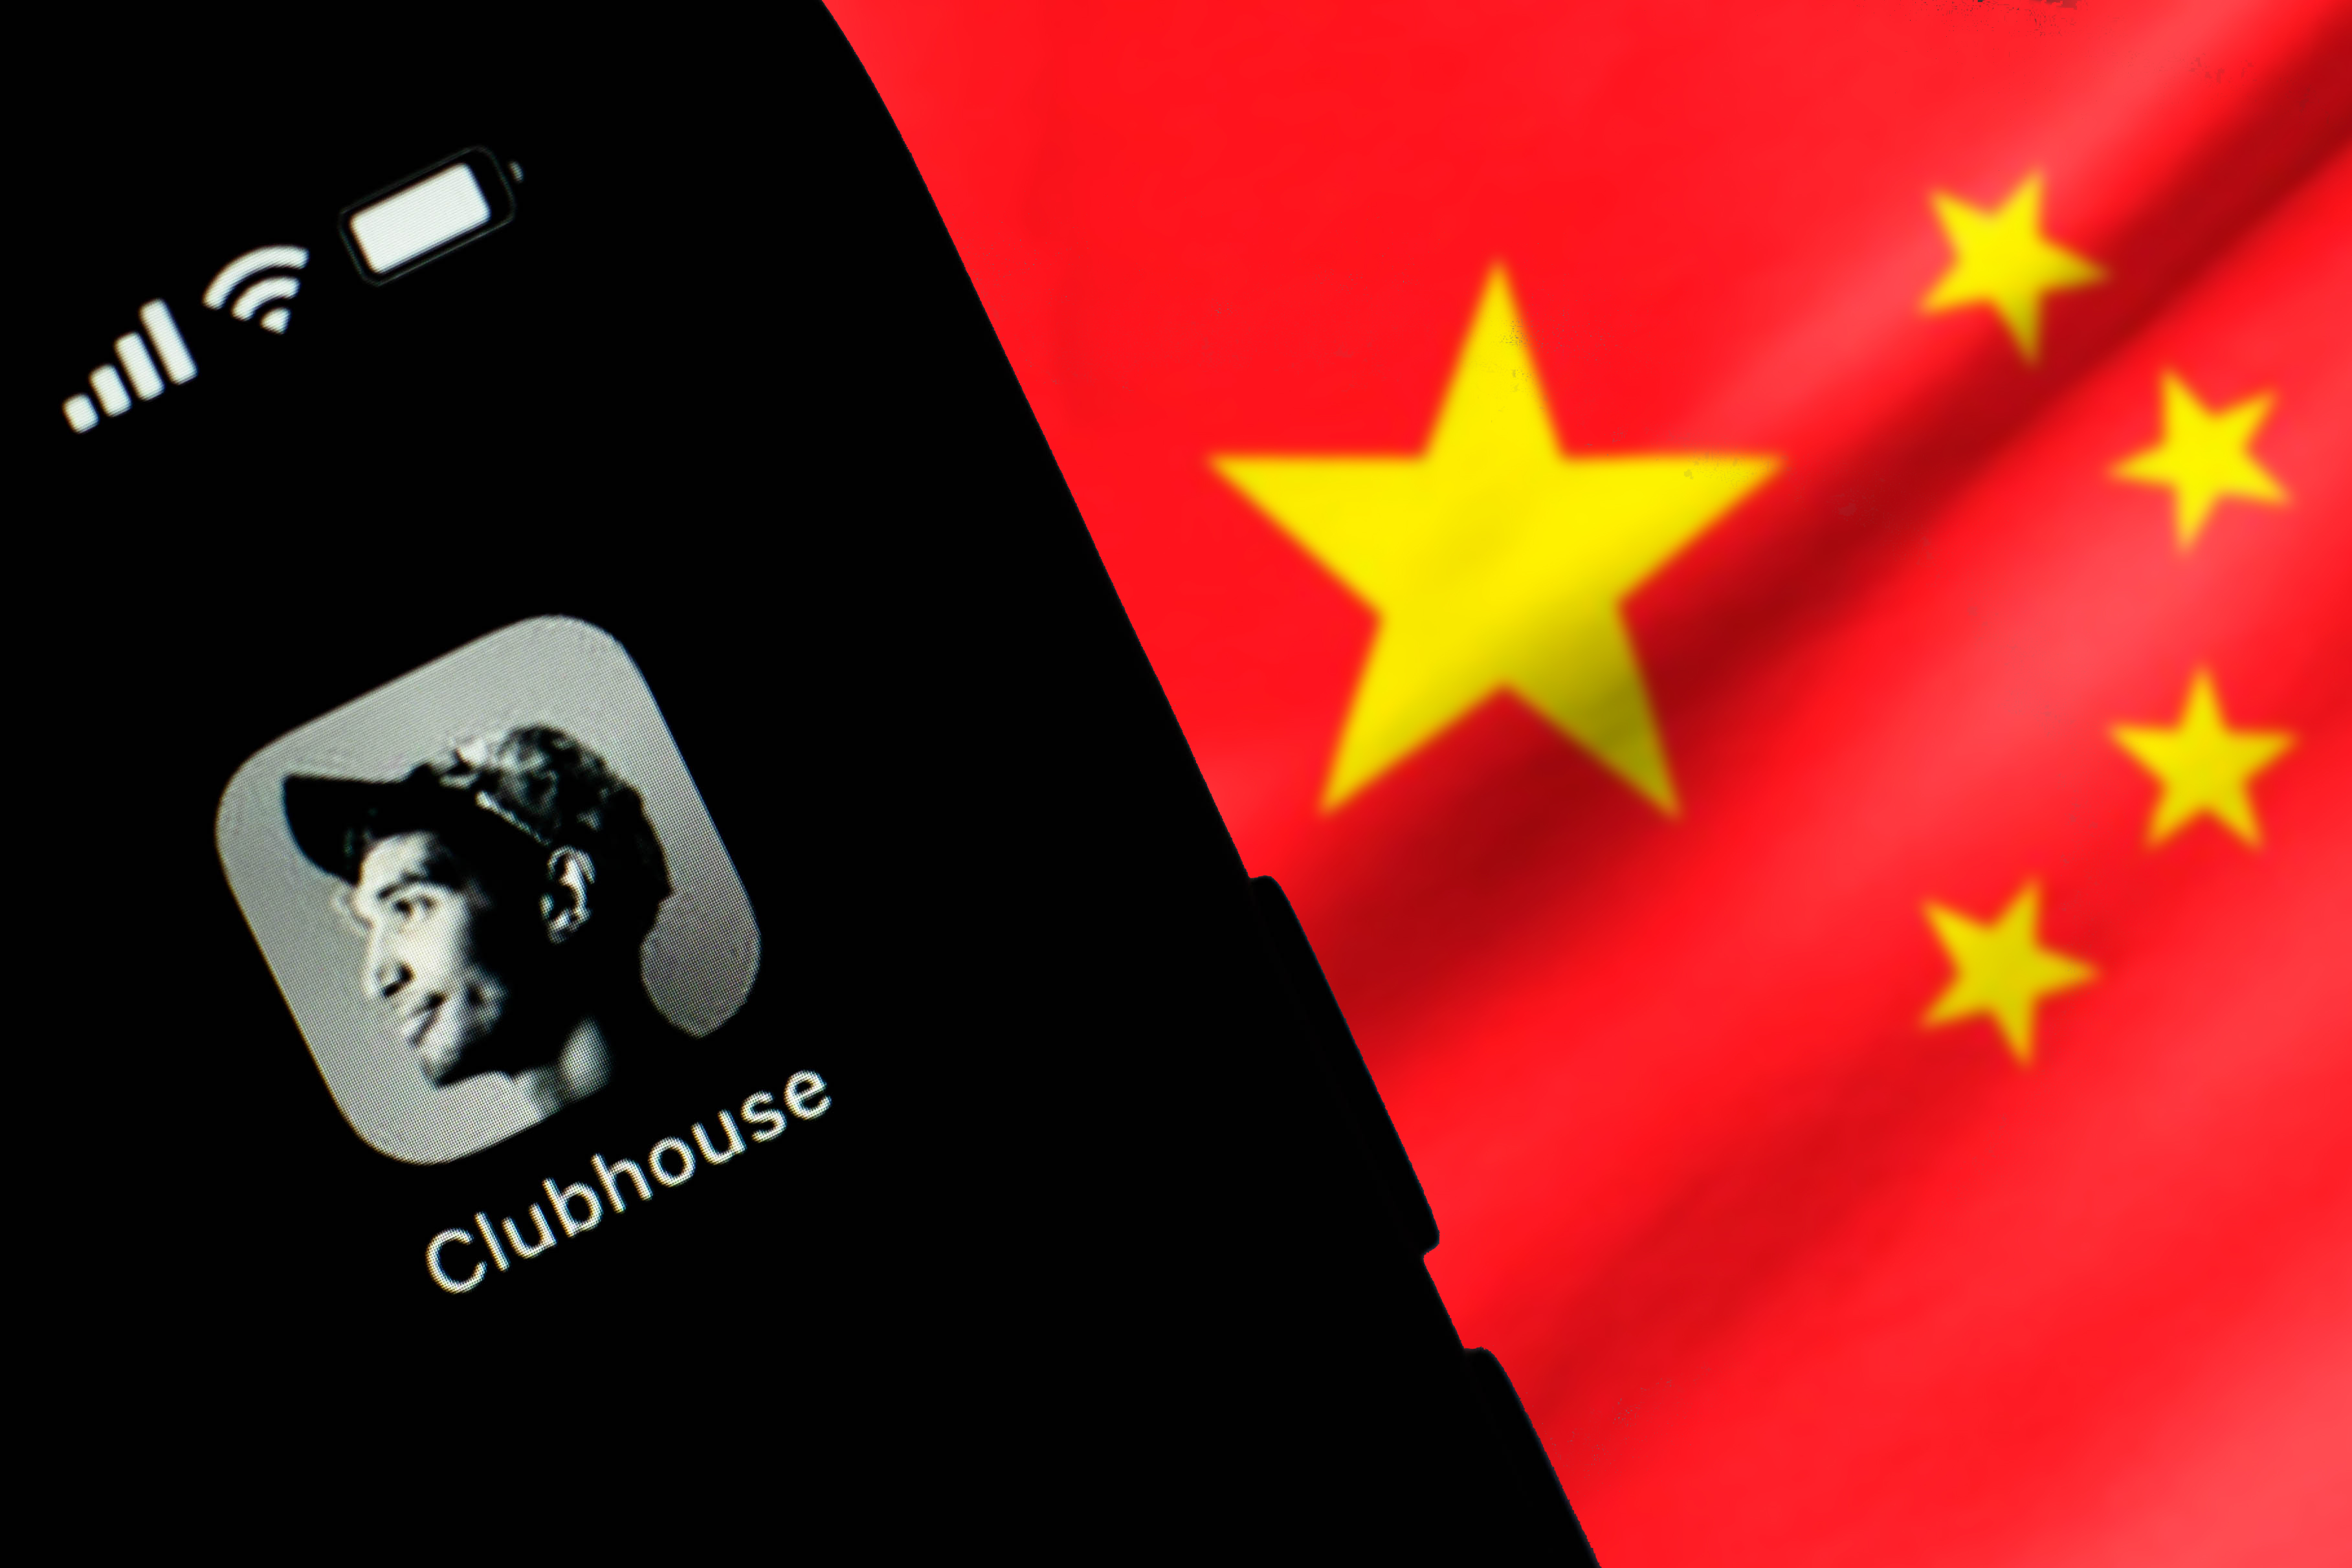 Clubhouse is tightening security to address China spying fears